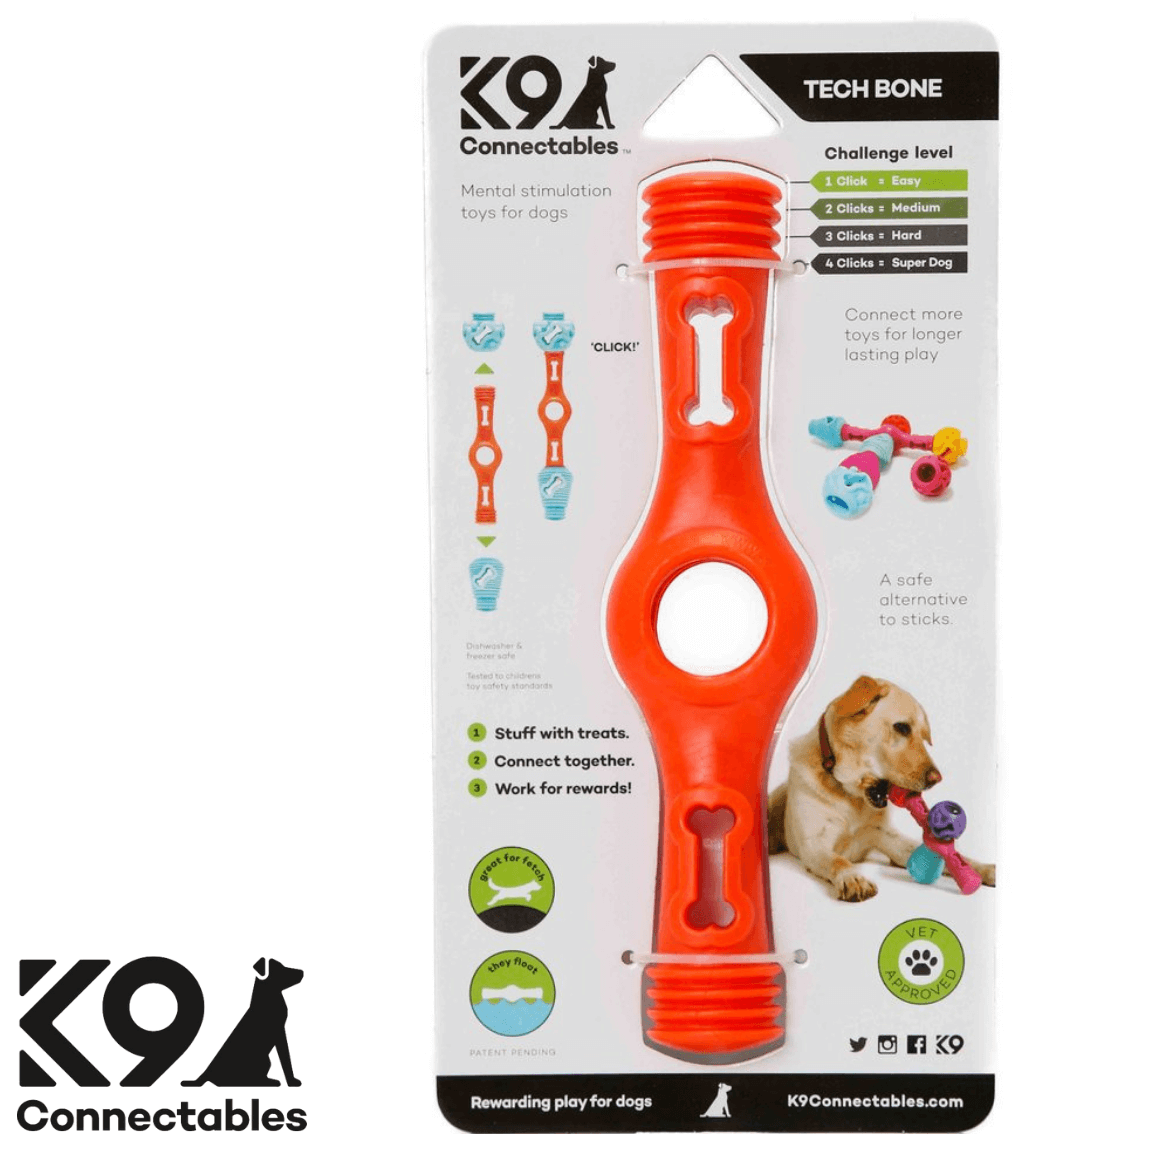 k9 Connectables Australia - The Tech Bone Orange